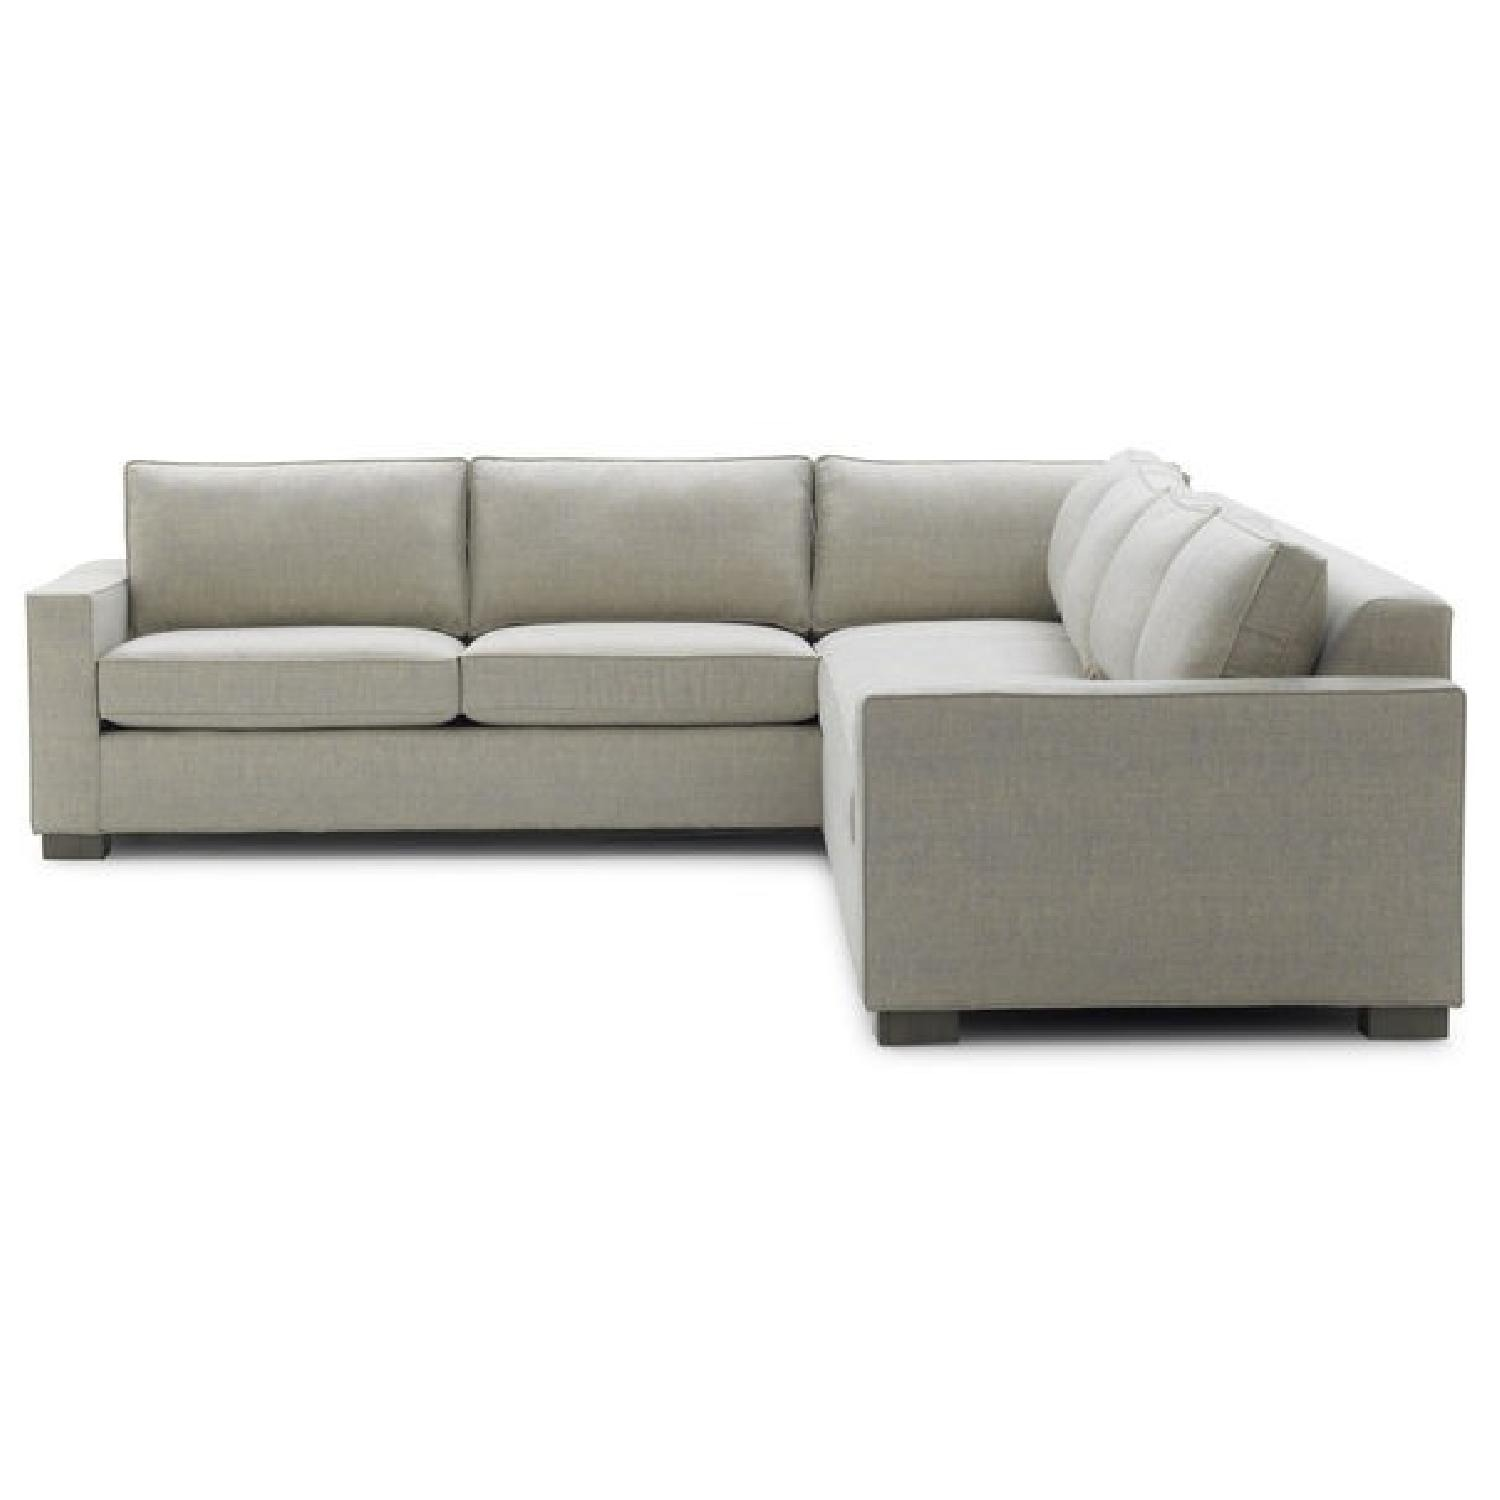 Mitchell Gold + Bob William 2 Piece Sectional Sofa - image-1